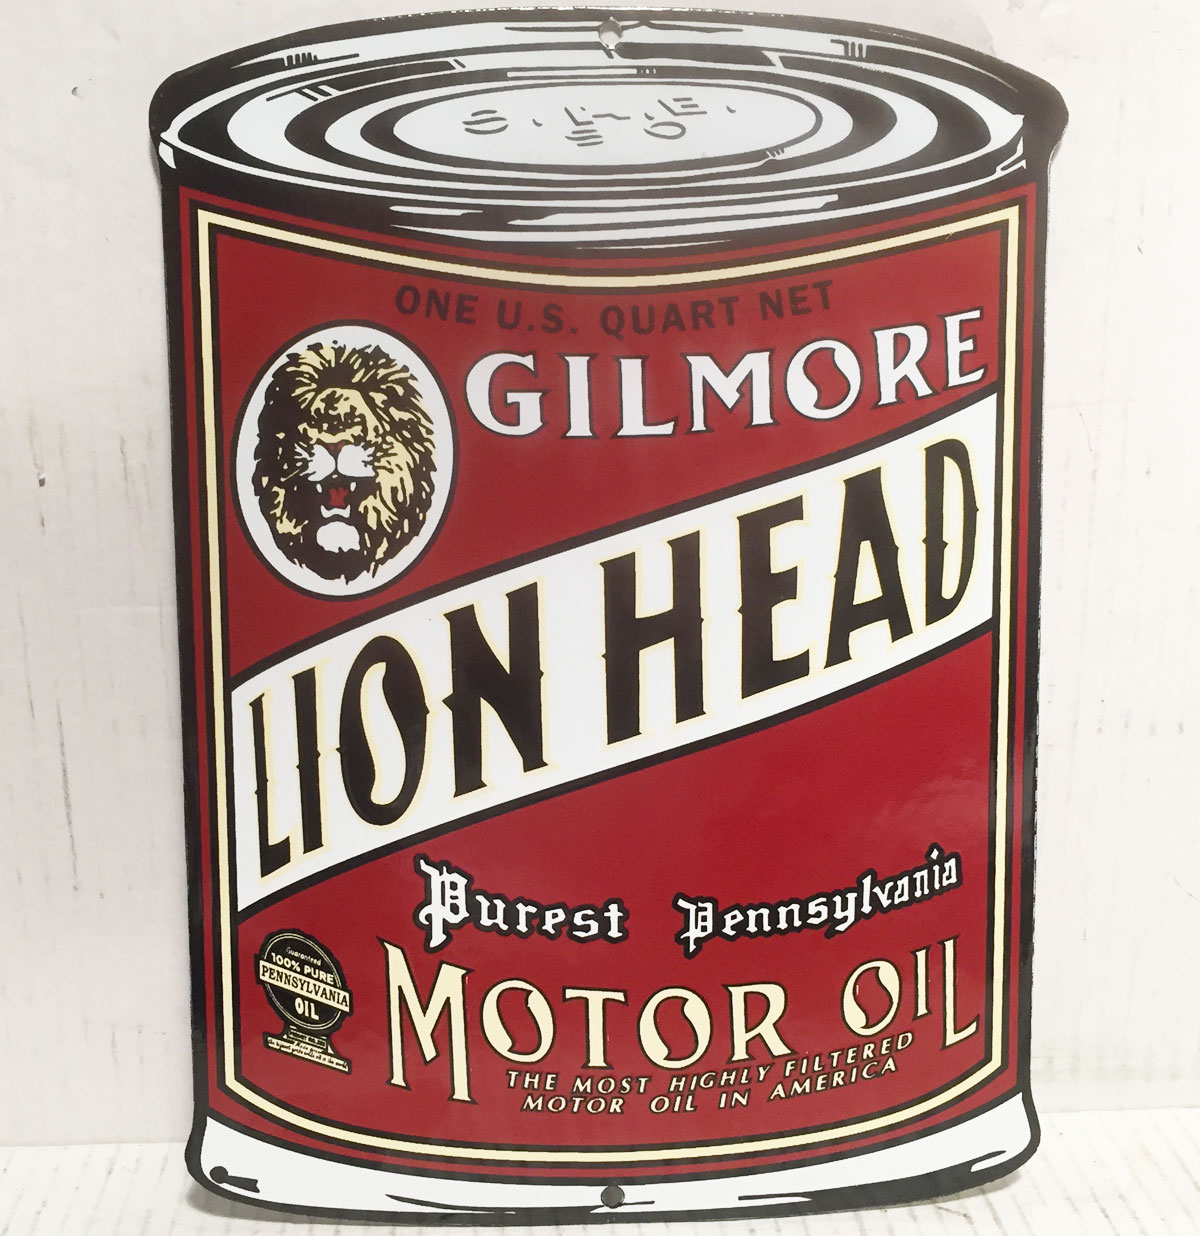 Gilmore Lion Head Motor Oil - Oil Can Shaped Emaille Bord